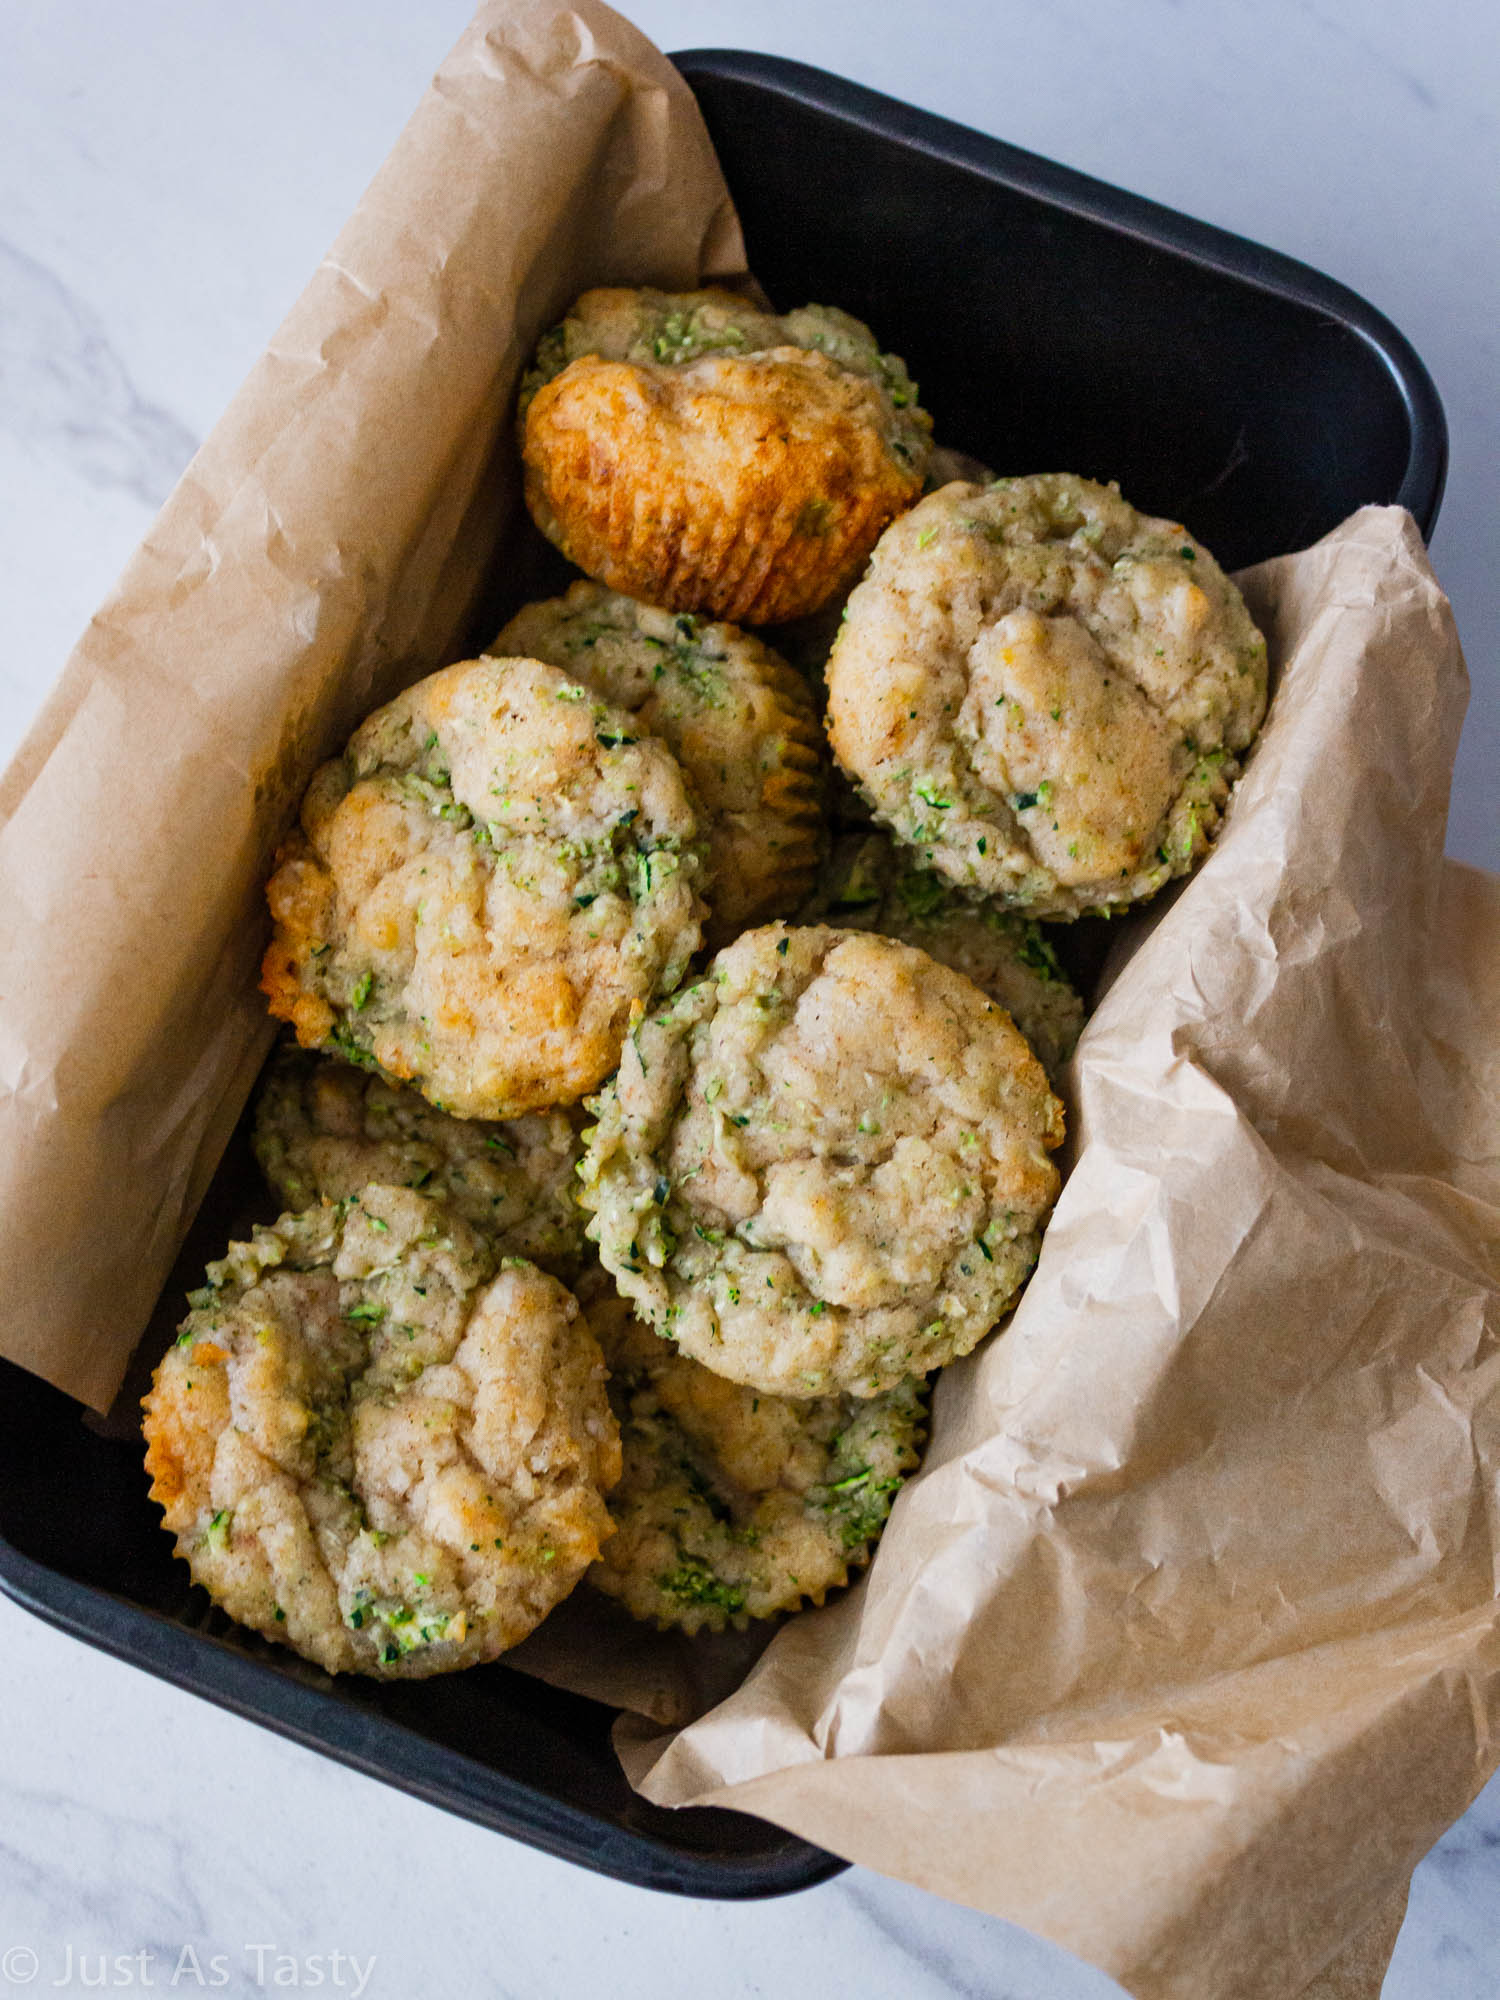 Zucchini muffins in a pan lined with parchment paper.